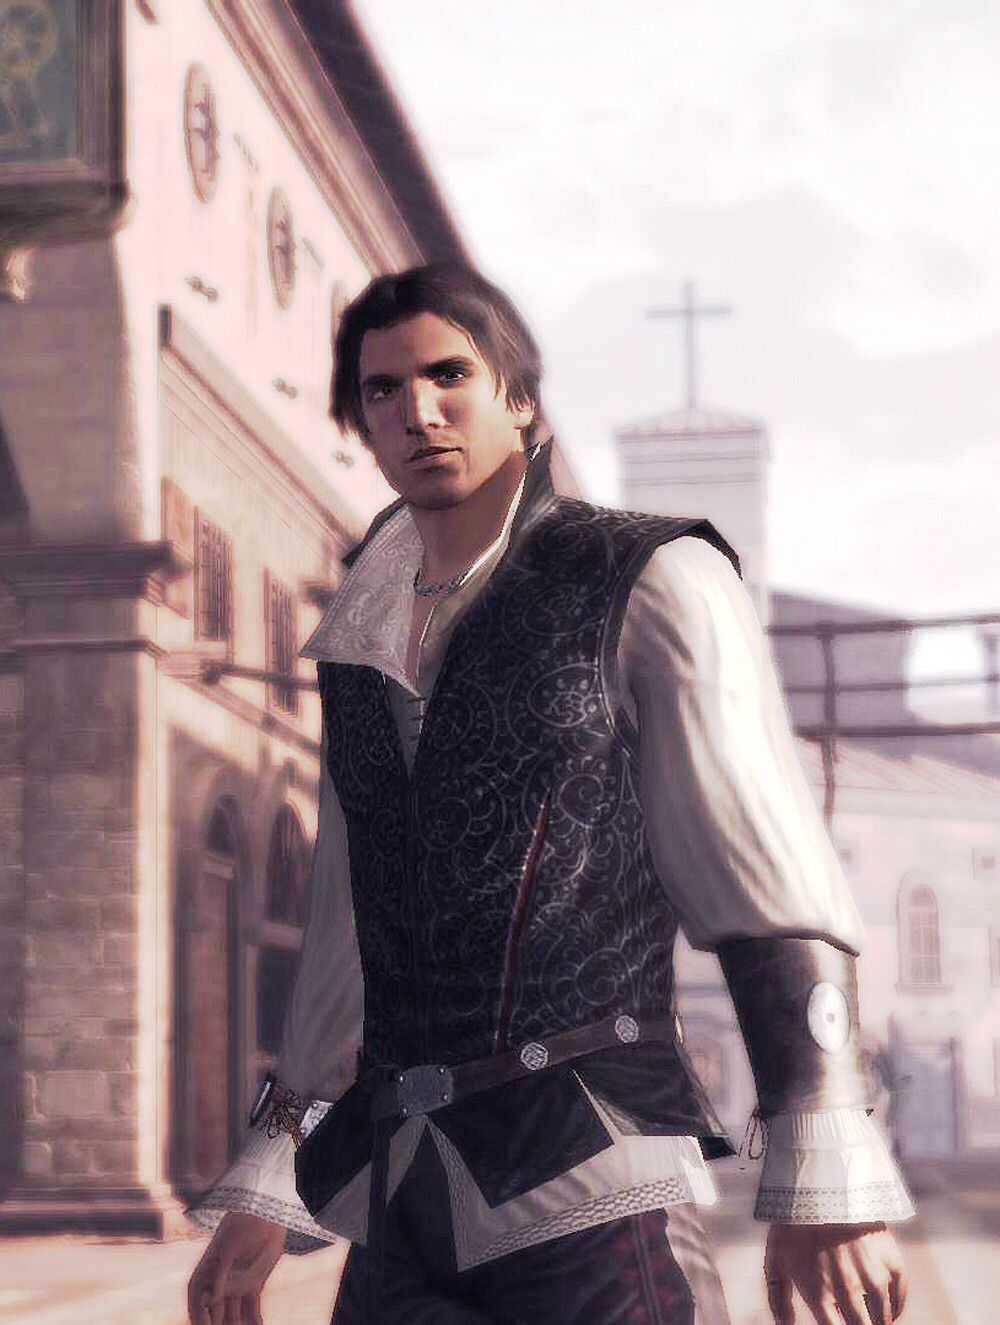 Ezio Auditore Da Firenze Assassins Creed 2 Assassins Creed